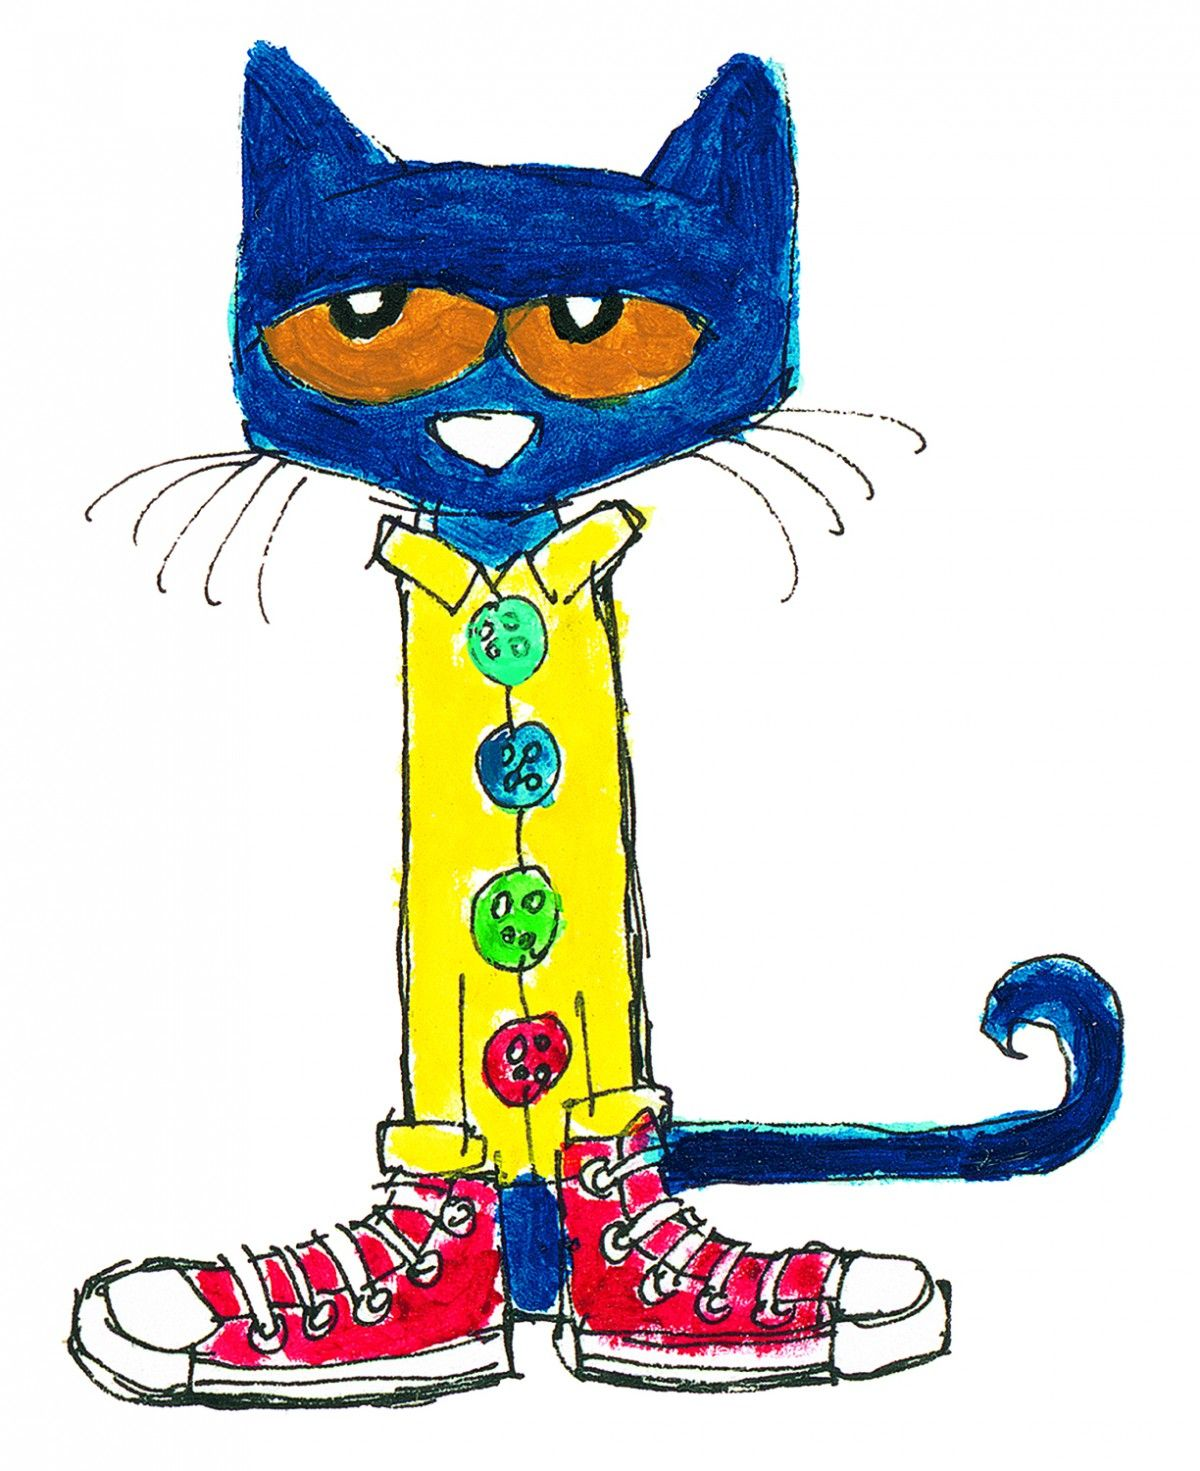 image result for pete the cat pete the cat pinterest rh pinterest com Pete the Cat School Bathroom Clip Art Pete the Cat Background